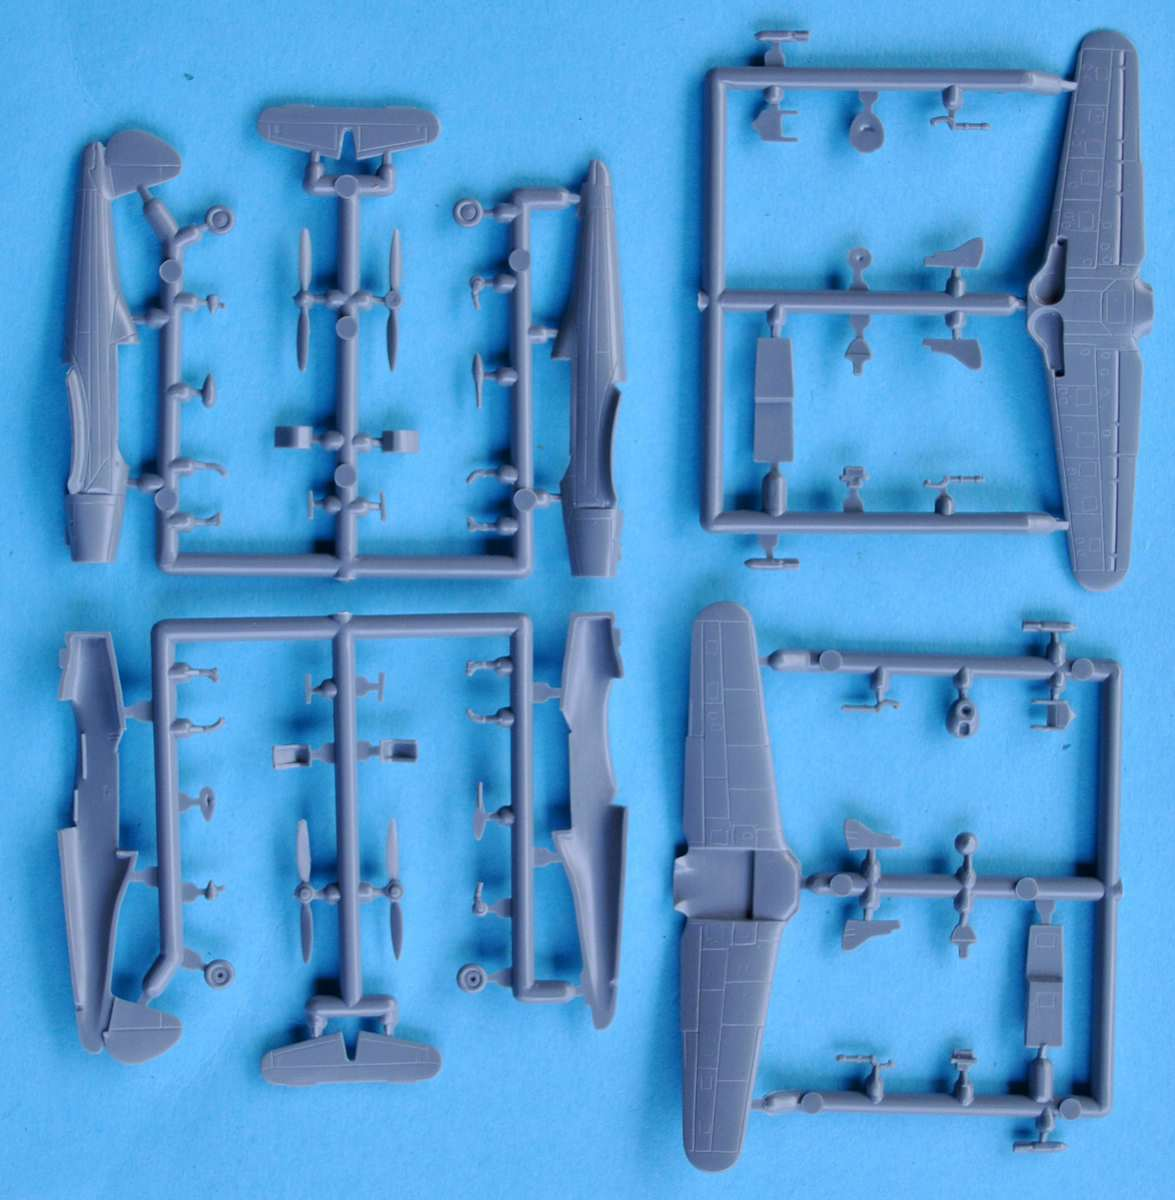 Mark-I-Models-Arado-Ar-96-6 Arado Ar 96B und Avia C.2 von Mark I Models in 1:144